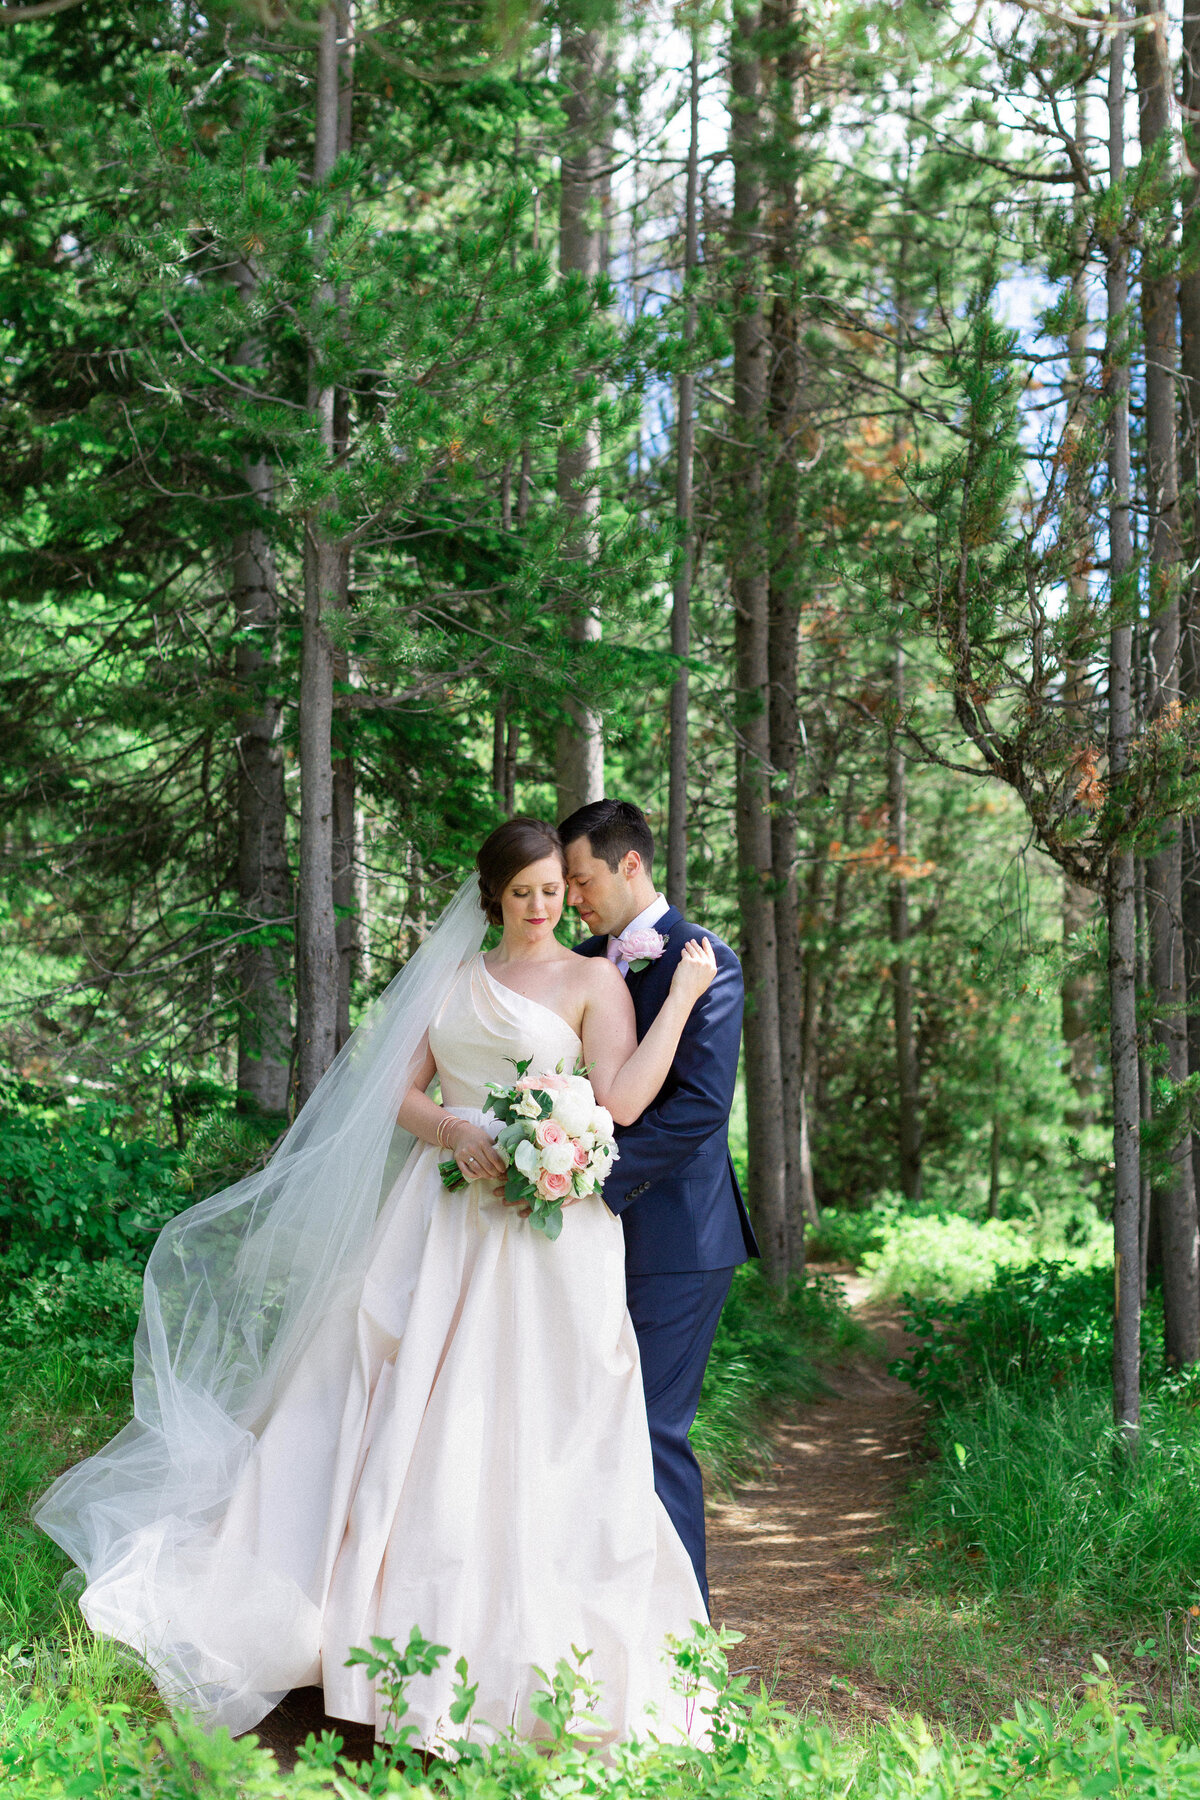 DestinationWeddingPhotographer-GrandTetonsLodge-GrandTetonsNationalParkWedding-TessaMa8xinePhotography